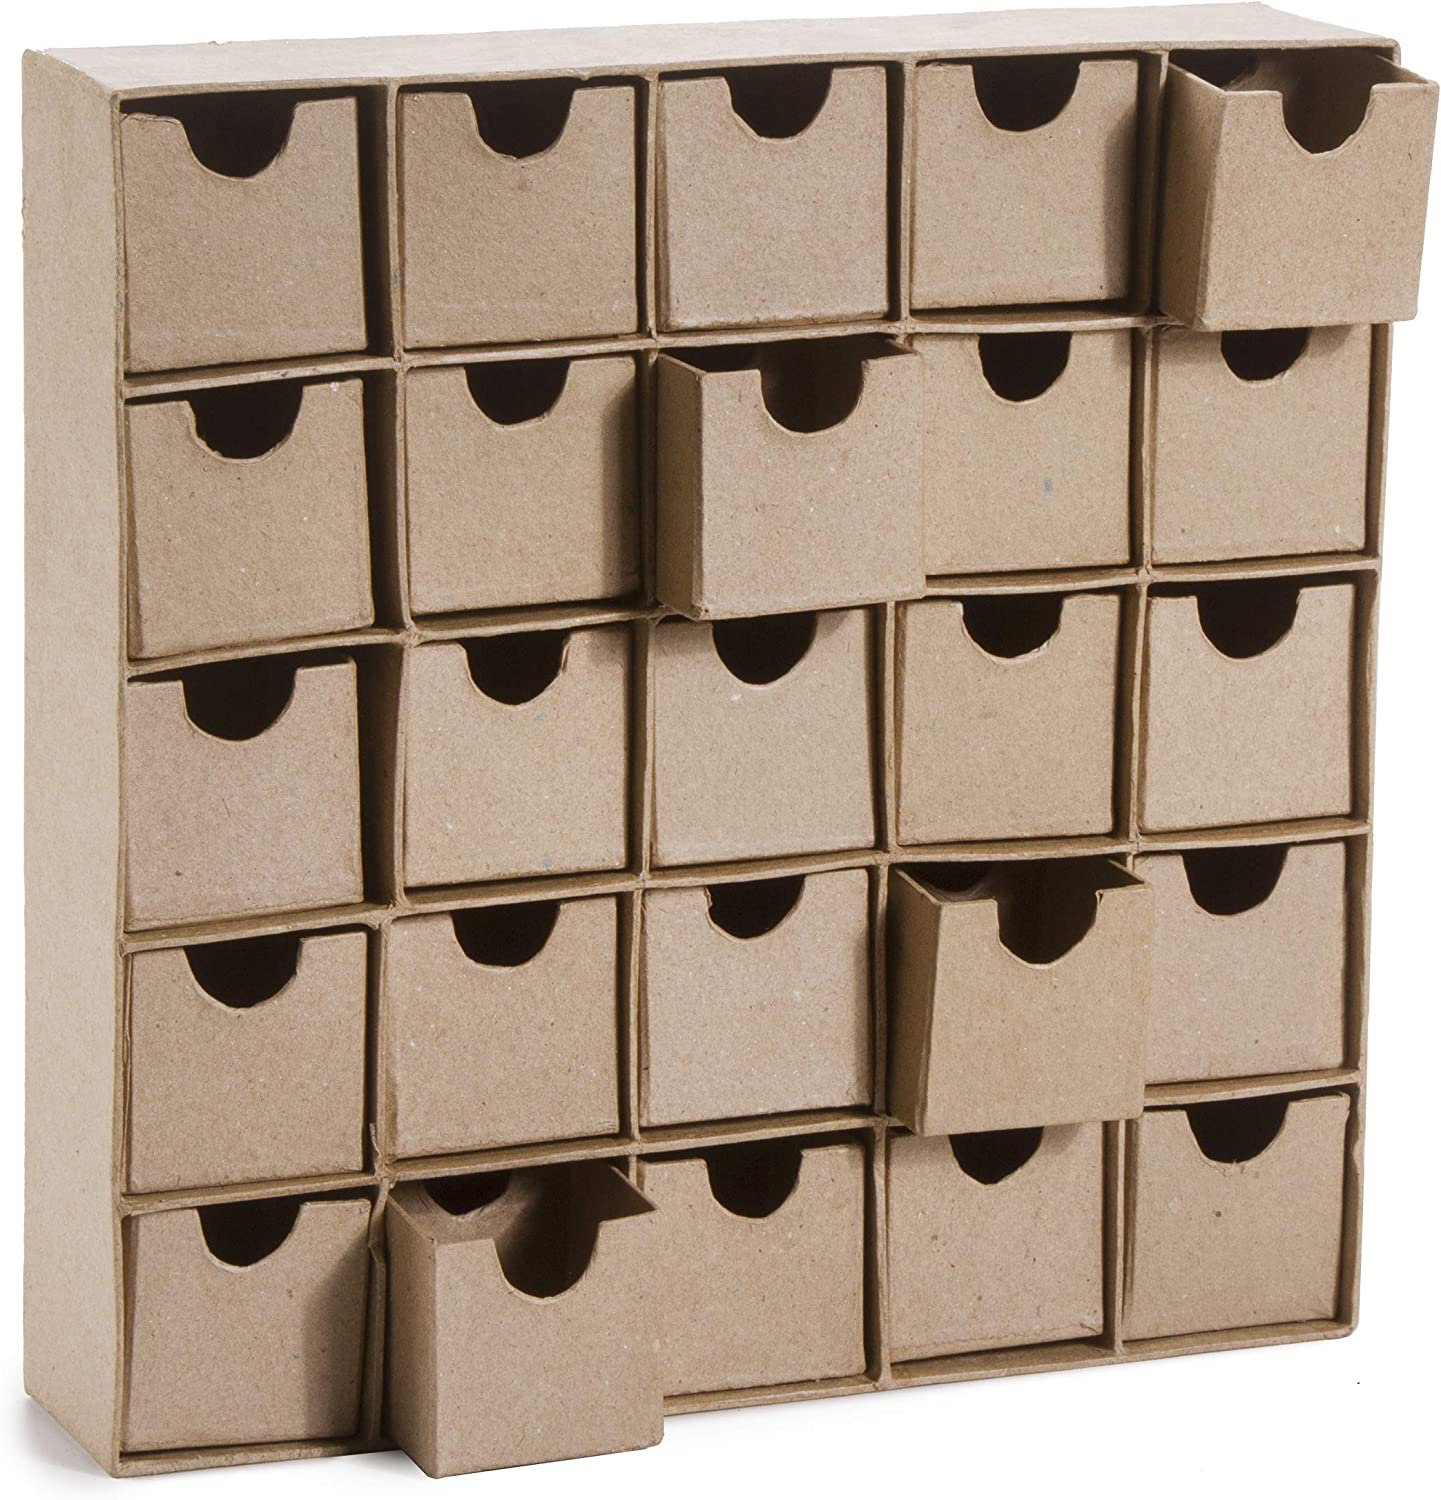 DARICE Unfinished Paper Mache Box Organizer with 25 compartments: 11 x 11, Natural